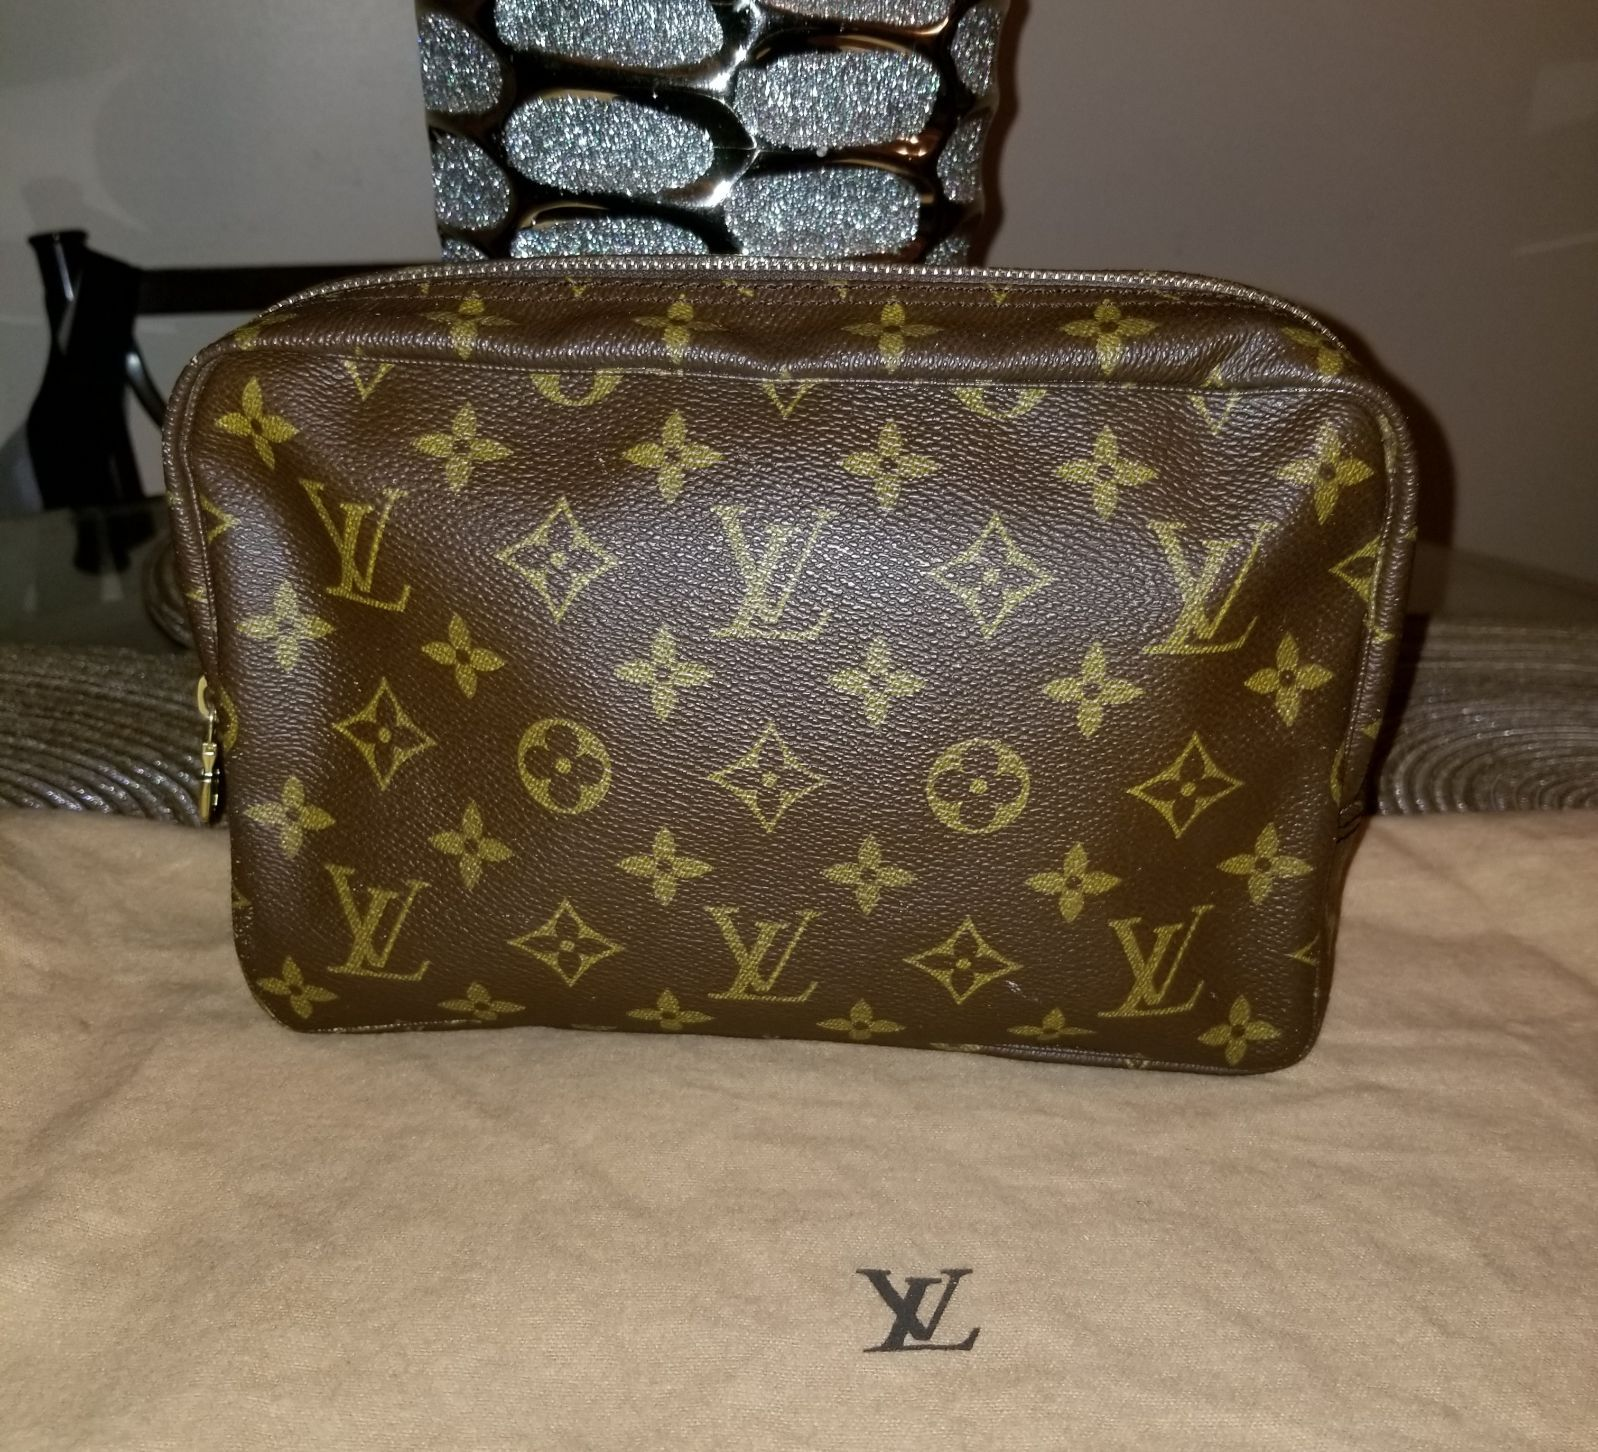 Preloved Lv Trousse Toilette 23 Has Some Scuffs And Scratches On